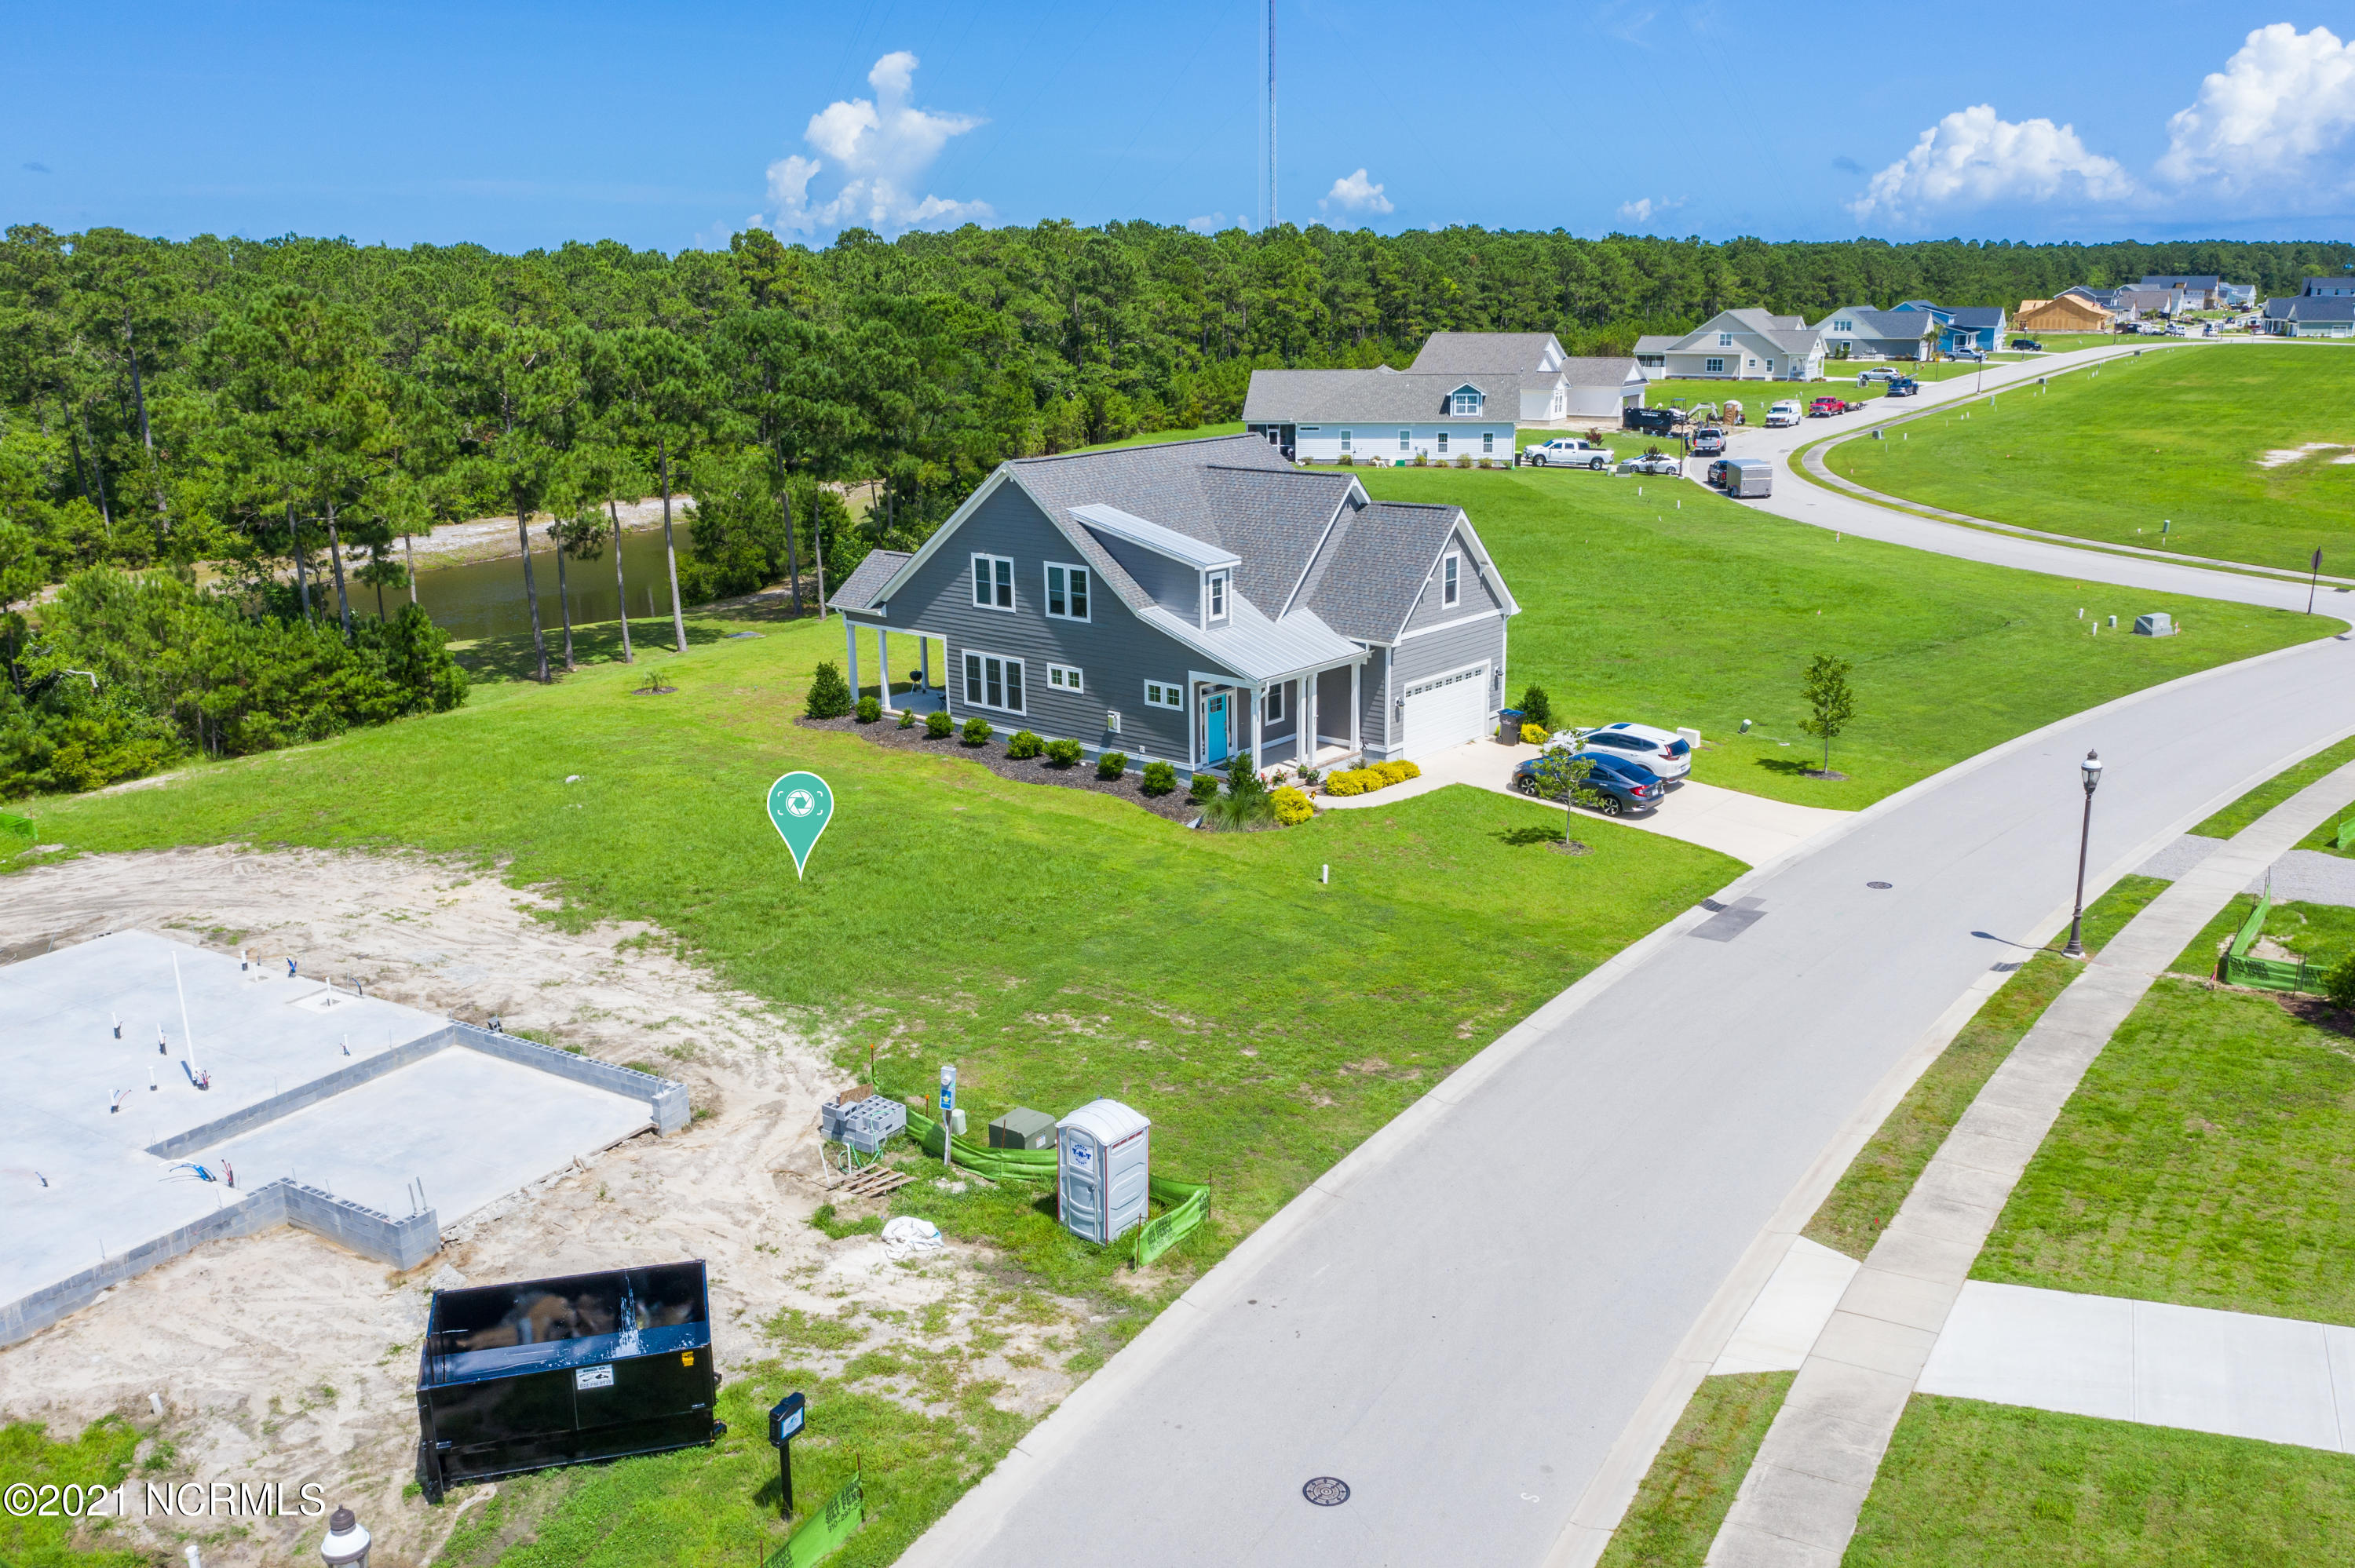 This lot is ready to build and boasts a tree lined back yard with rear pond for added privacy located in the Premier community of Summerhouse on Everett Bay! This highly desired community features 6 scenic lakes and community amenities include two gated entries into the community, Resort style community pool with lazy river, two tennis courts, breathtaking clubhouse, boat launch with direct access to the intracoastal waterway including day docks and pier, on-site boat storage, picnic areas, nature park with fire pit, walking trails, open air pavilion, playground, and fully equipped fitness center with lockers & showers. Perfectly located between Wilmington and Jacksonville and just minutes from MARSOC, Camp Lejeune, Topsail Beaches, and Stone Bay. Come home to extraordinary coastal living at its finest!